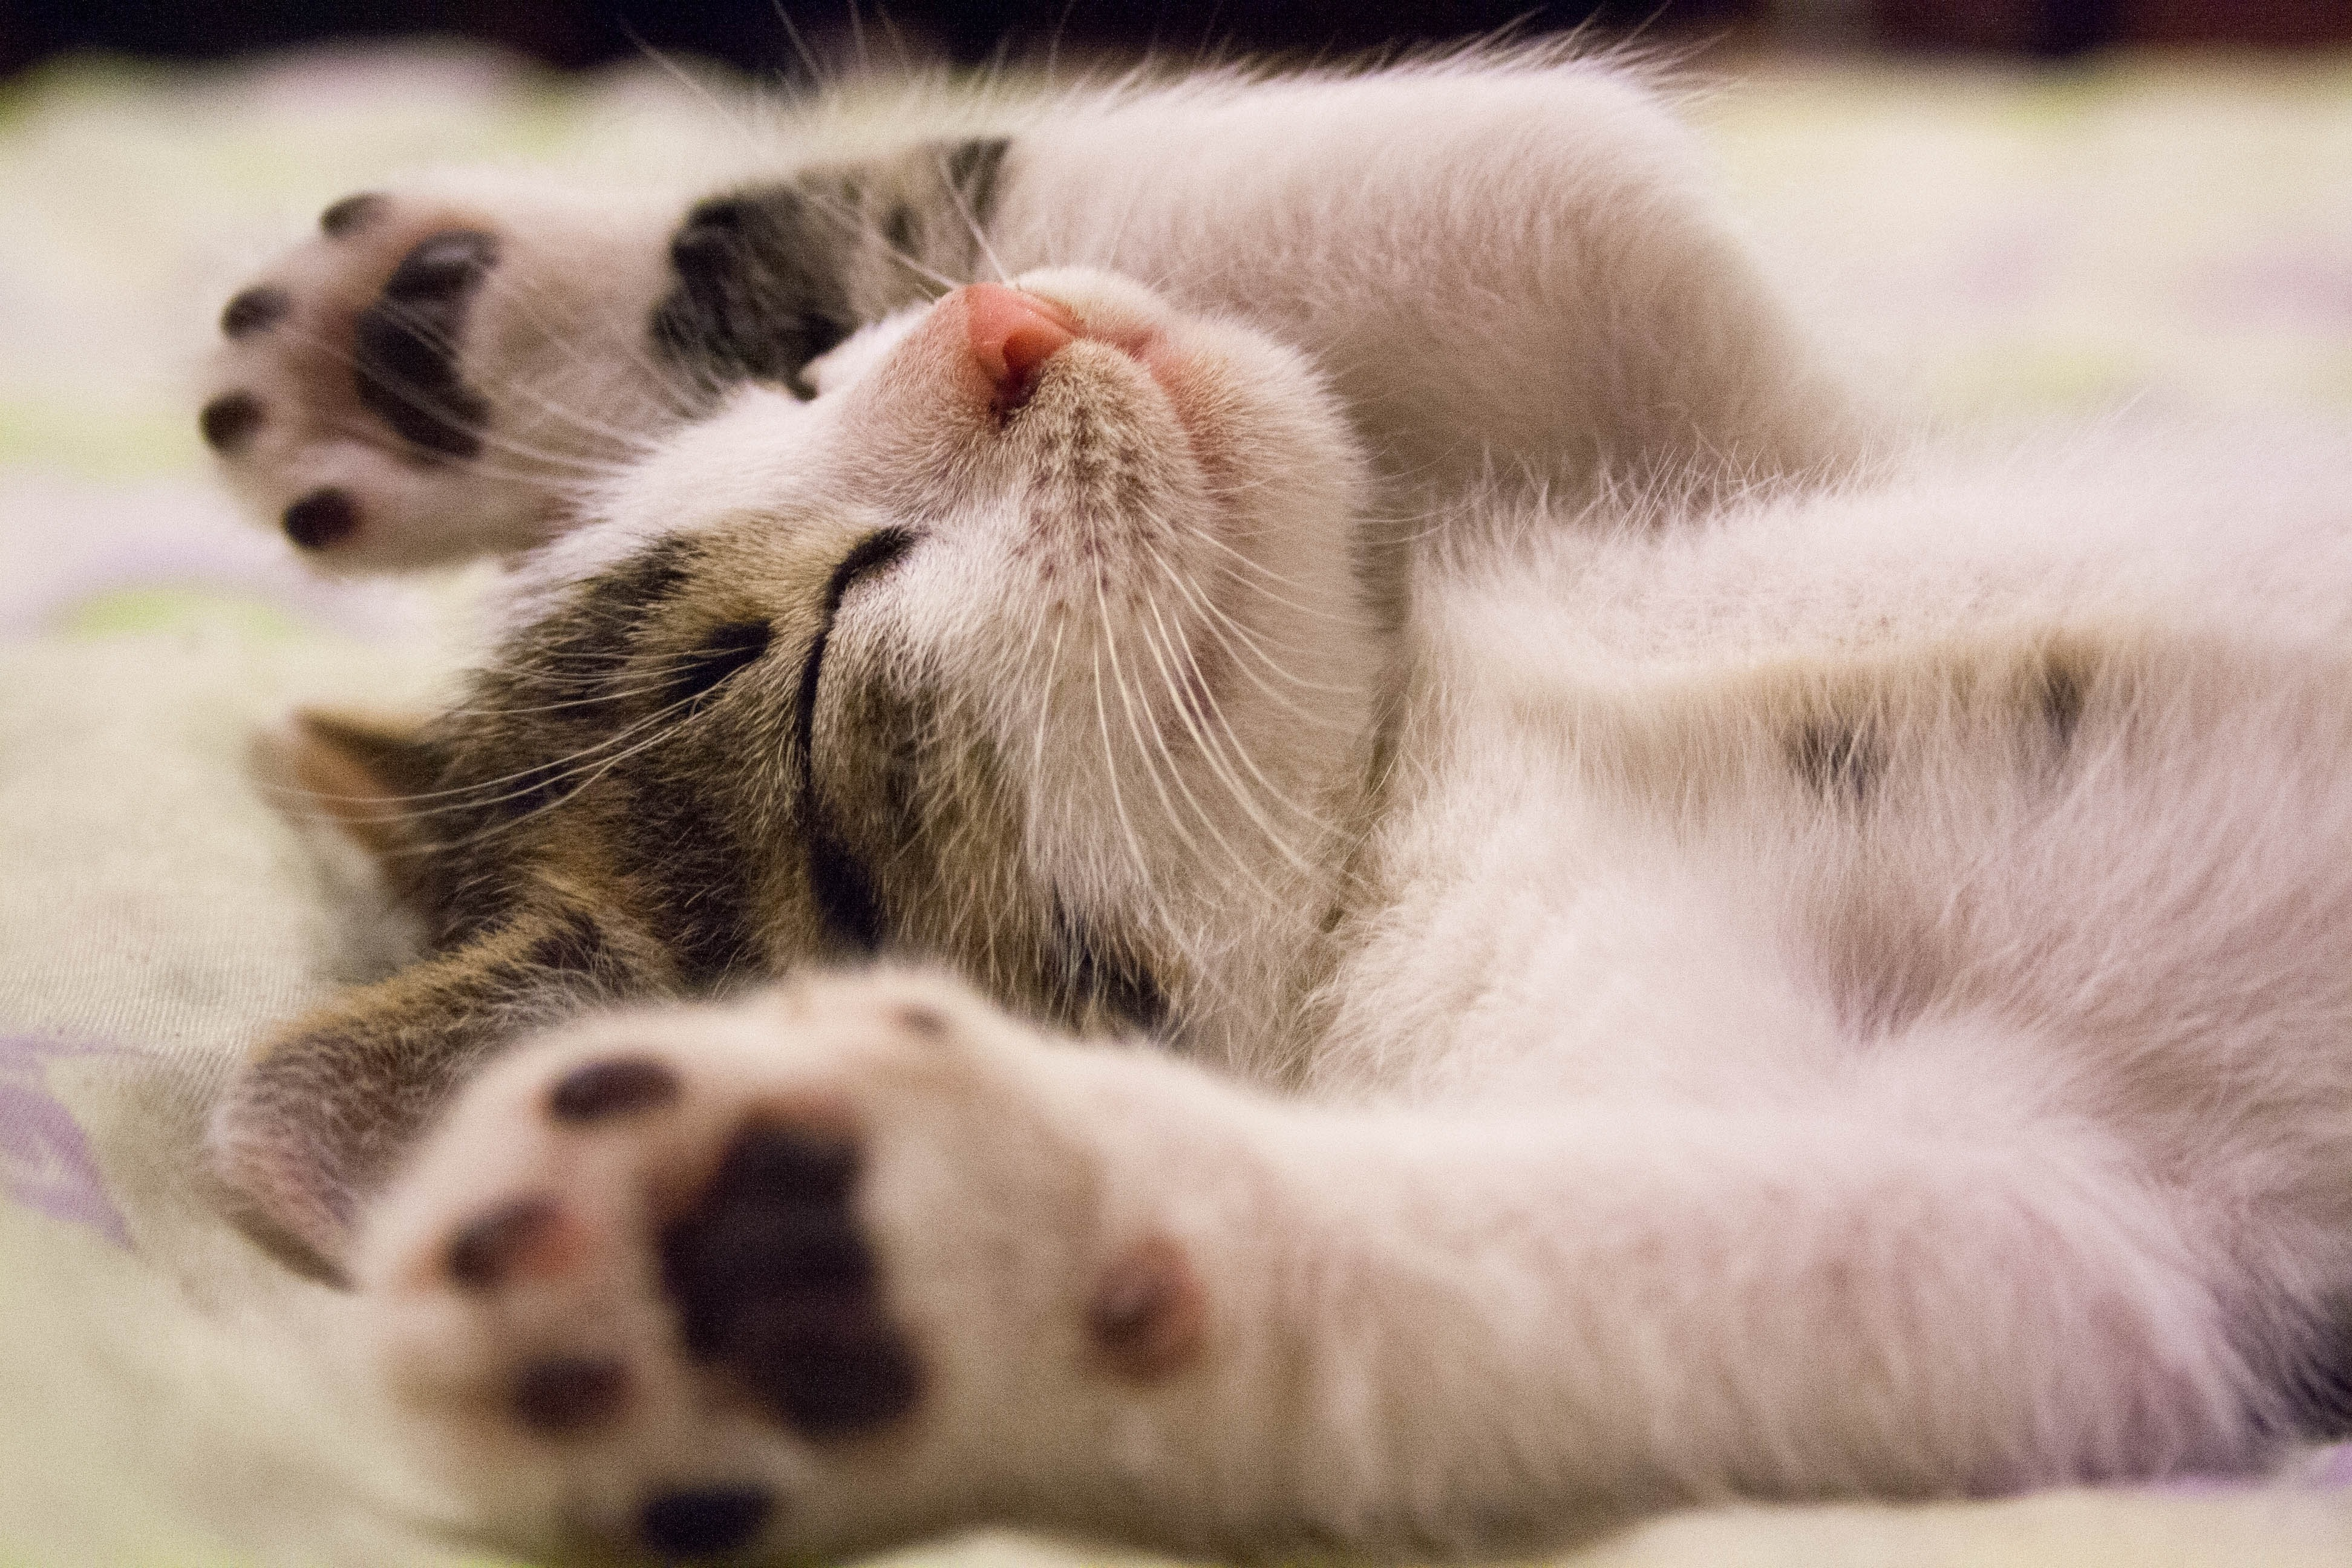 Puppies and Kittens Wallpaper ·①